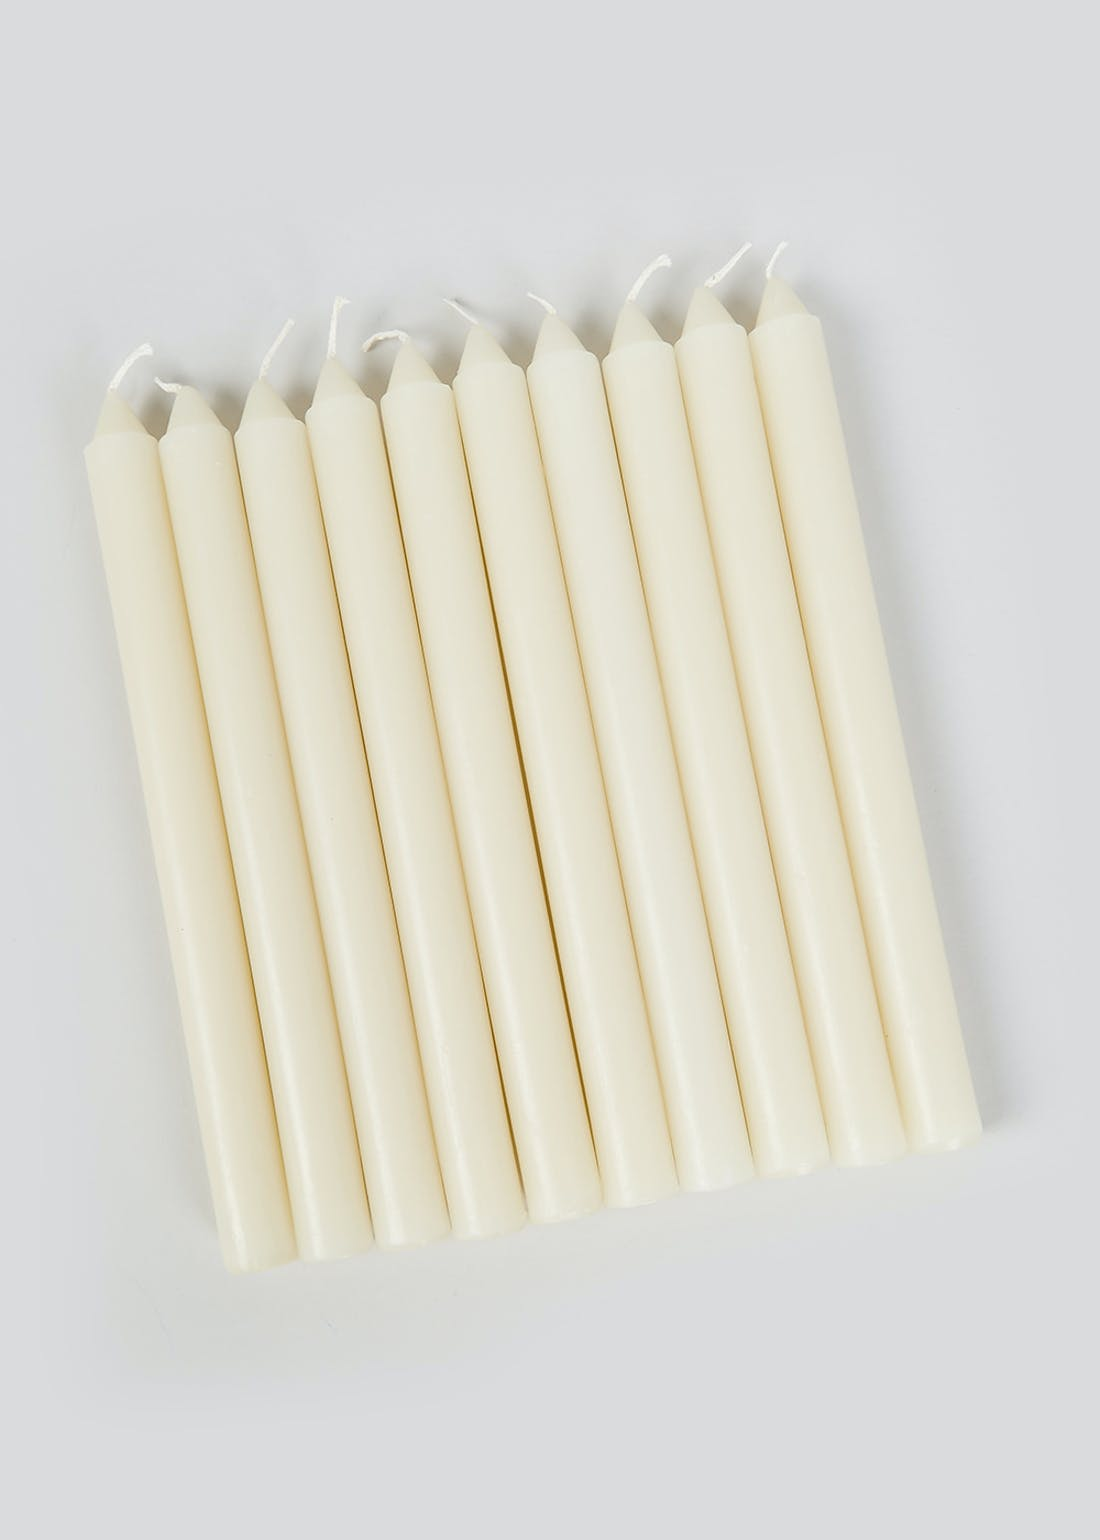 Pack of 10 Tall Dinner Candles (24cm x 2cm)